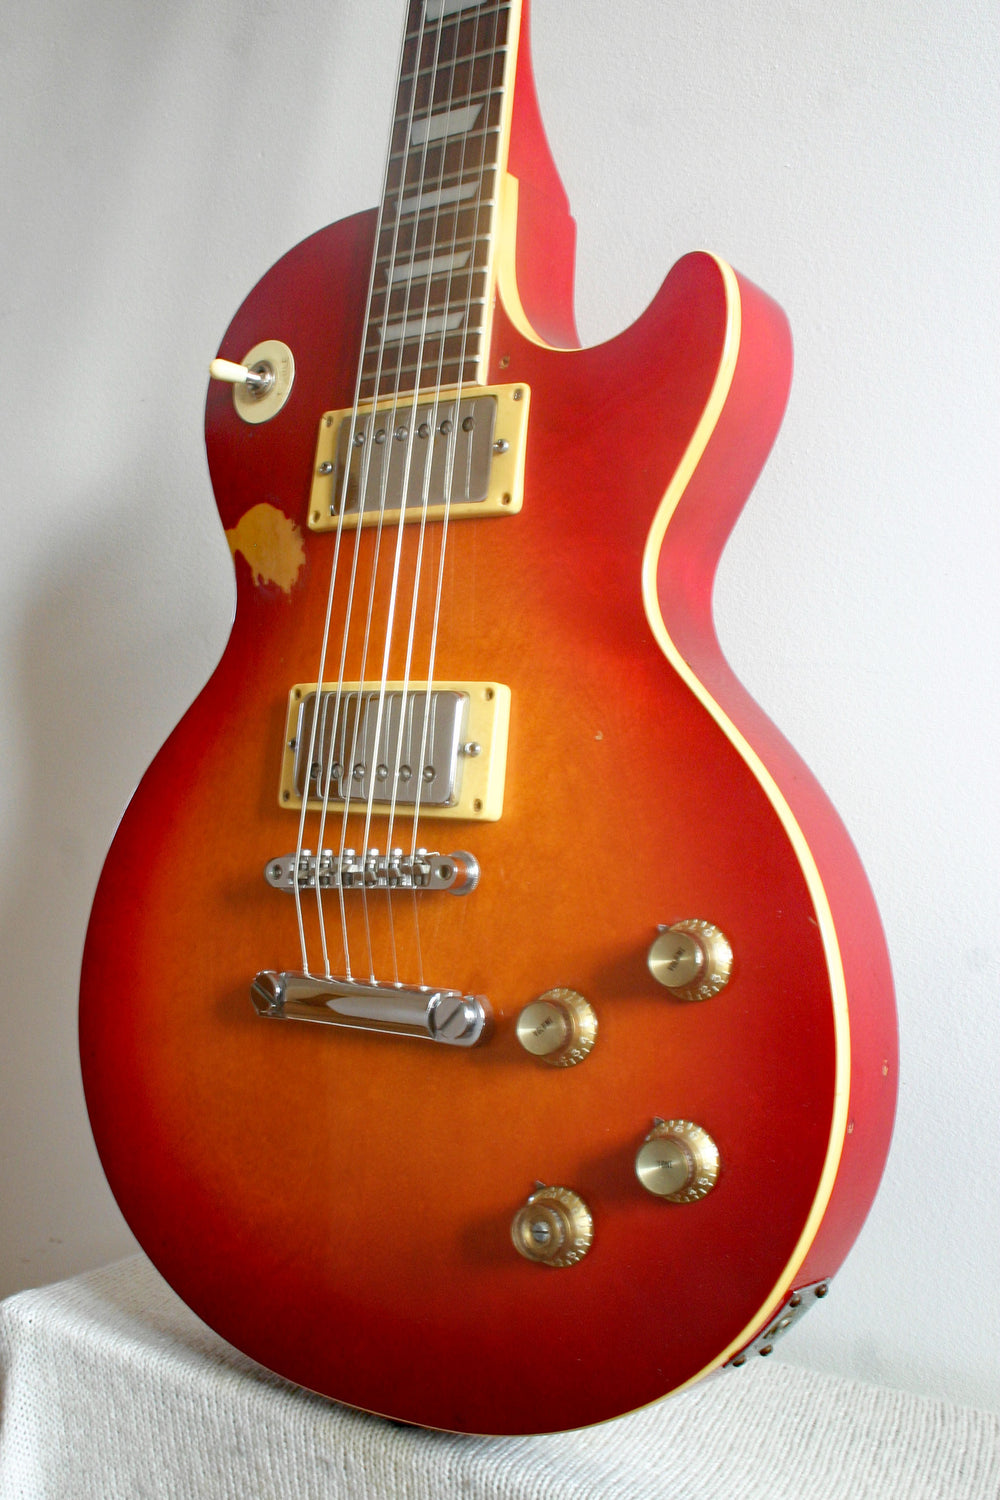 Used Yamaha Studio Lord SL500 Red Sunburst 1979